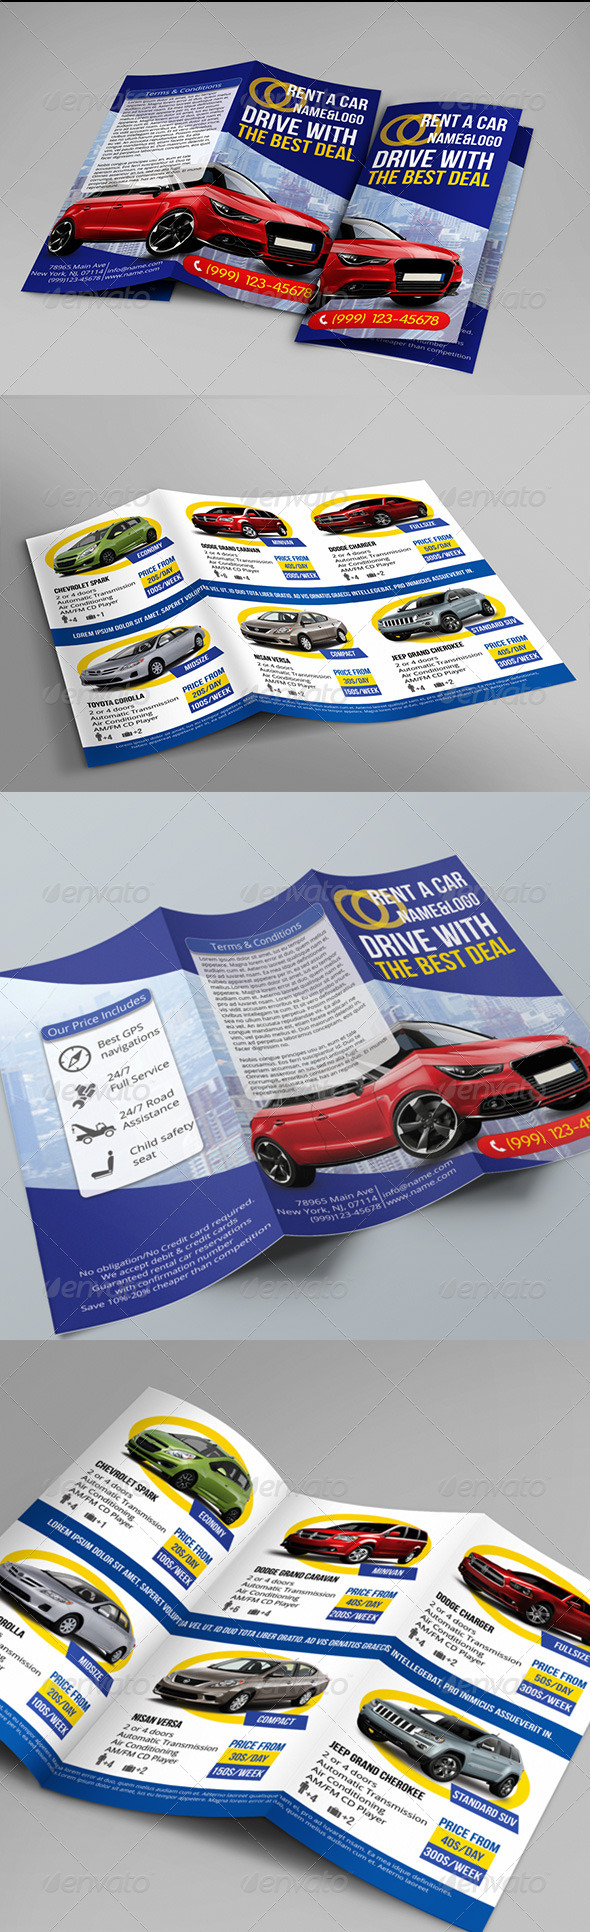 Rent a Car Trifold - Catalogs Brochures